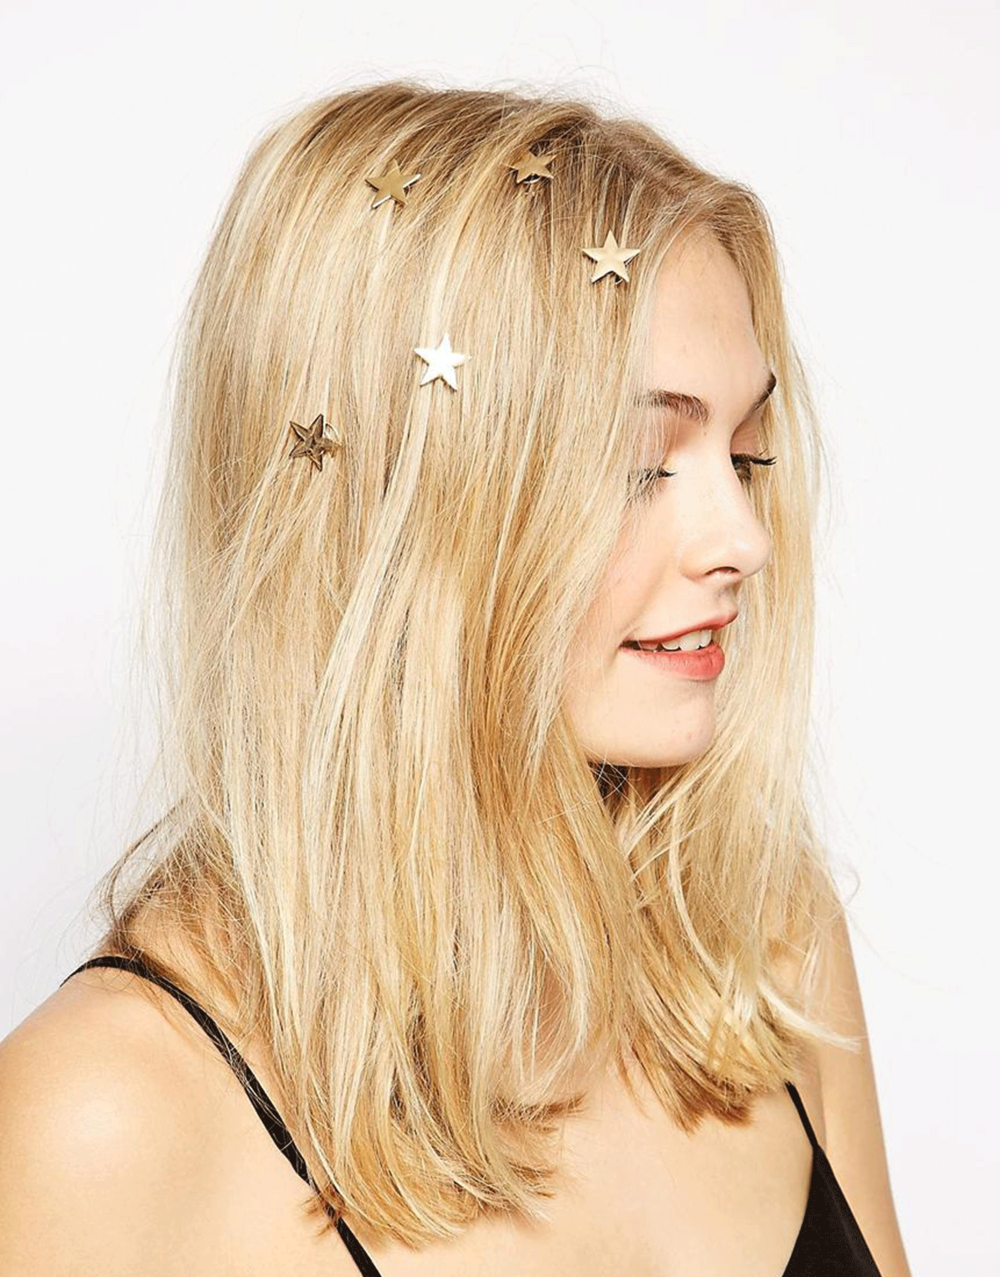 STARS FOR YOUR HAIR (!)